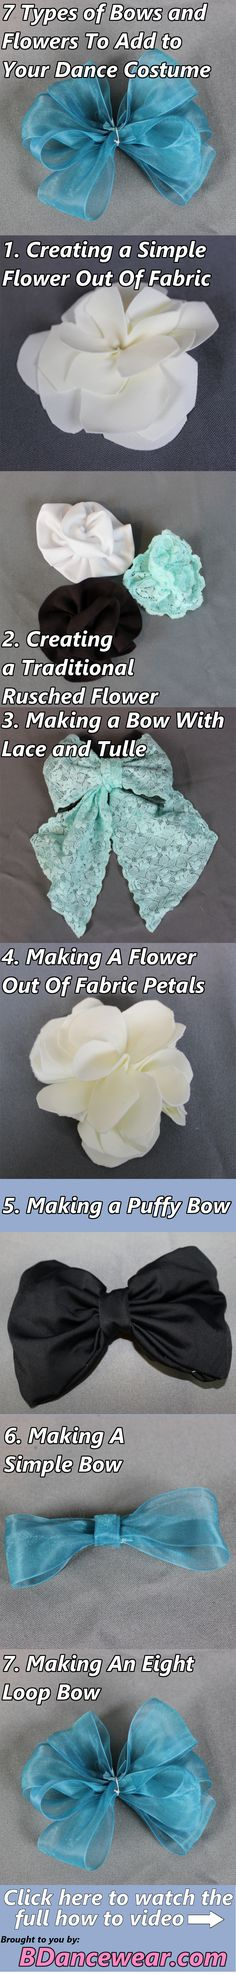 7 types of bows and flowers to add to your dance costume.